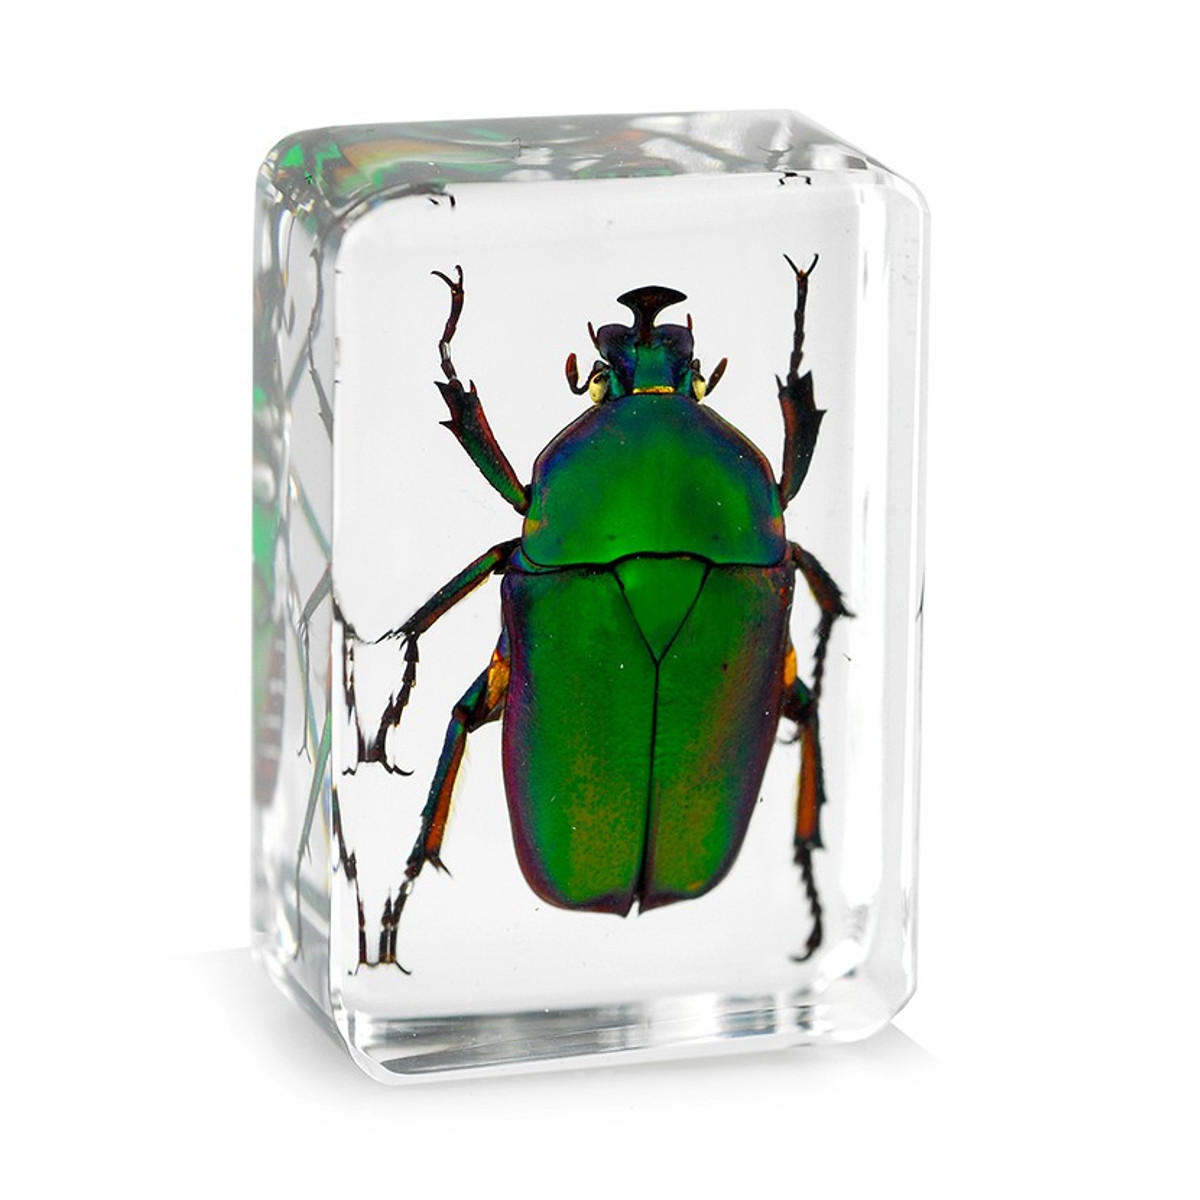 Transparent Insect Specimen Rose Chafer Beetle Animal Insect Display Specimen Educational Supply Biological Collection Pendant Necklace Decorations